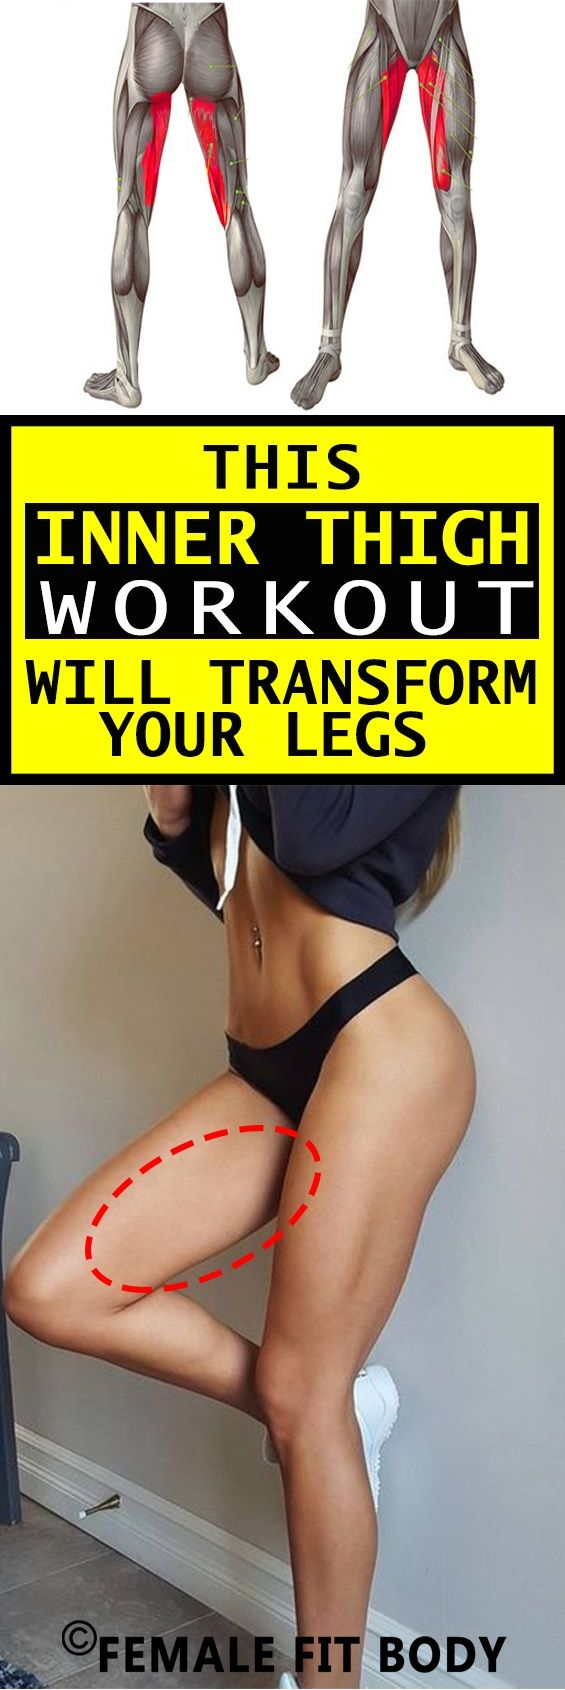 how to get bigger hips and small thighs